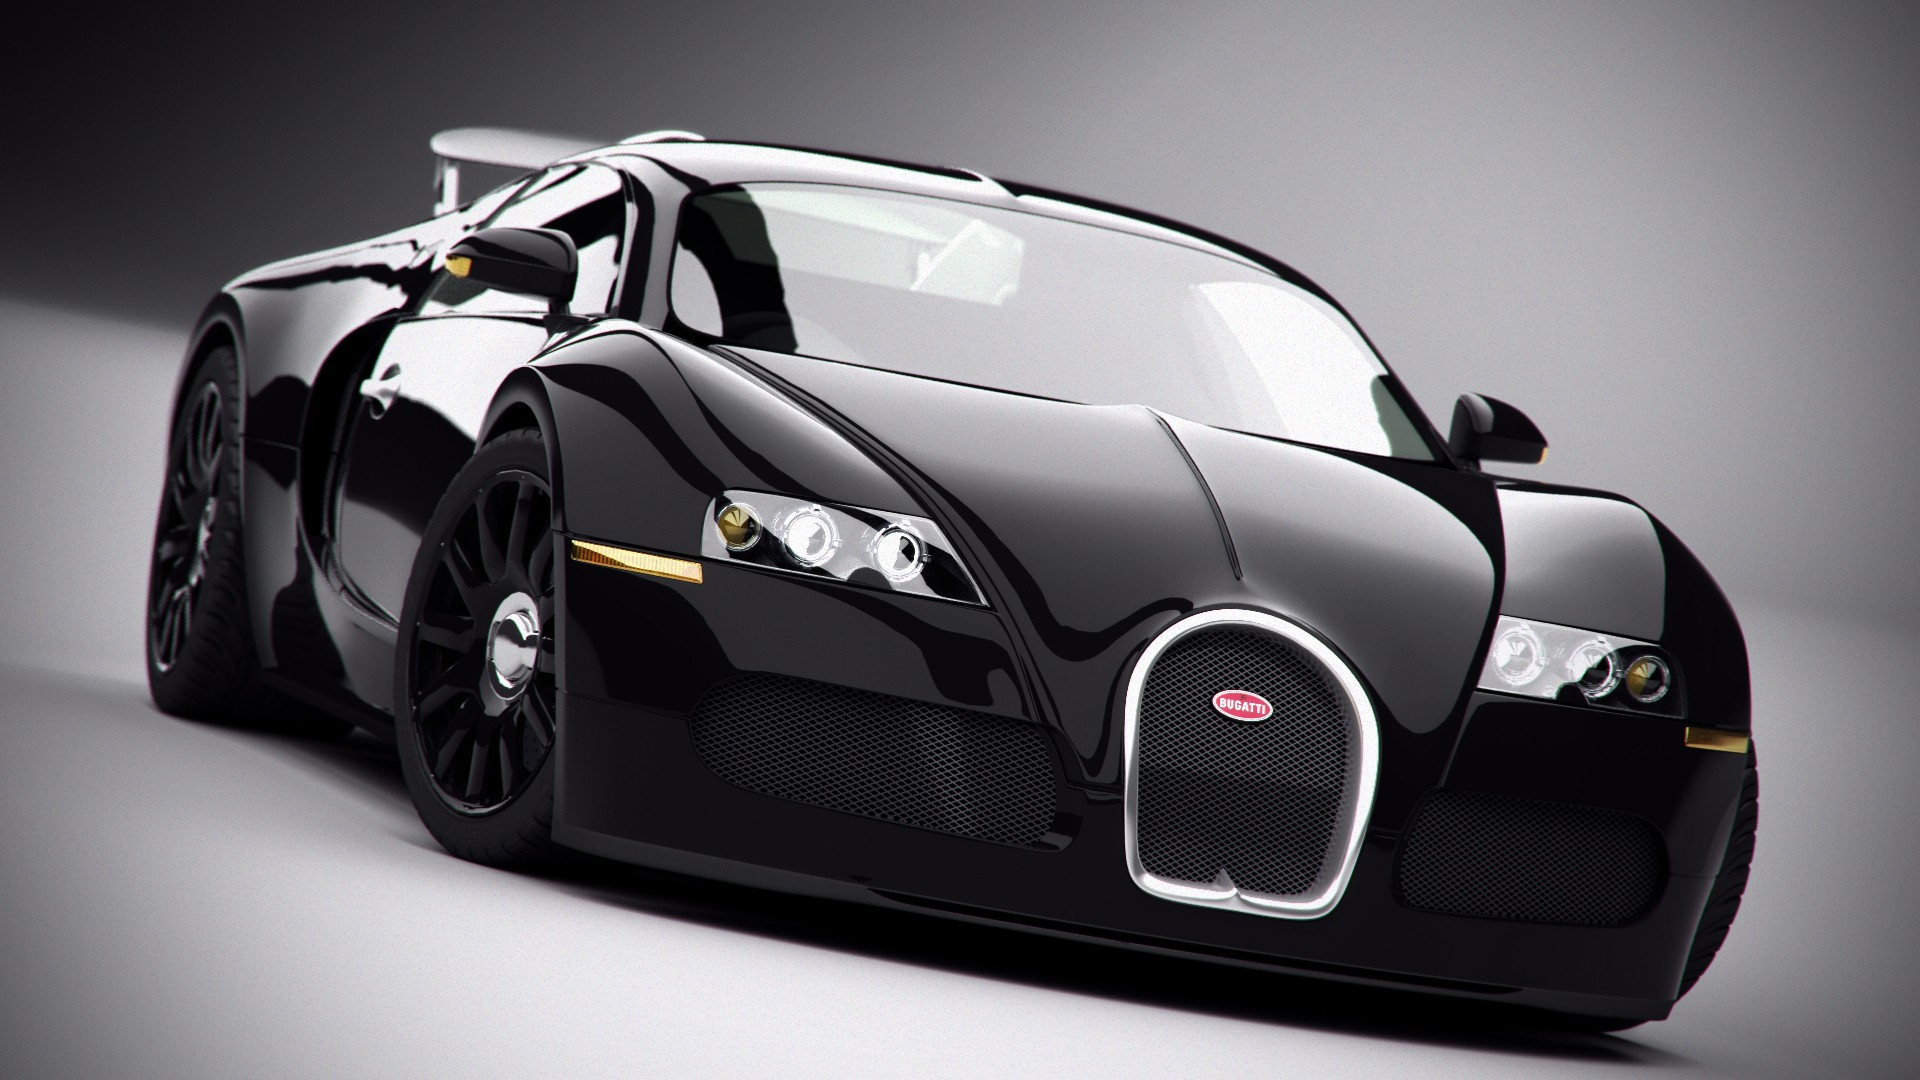 Bugatti Veyron supersport, photo black car